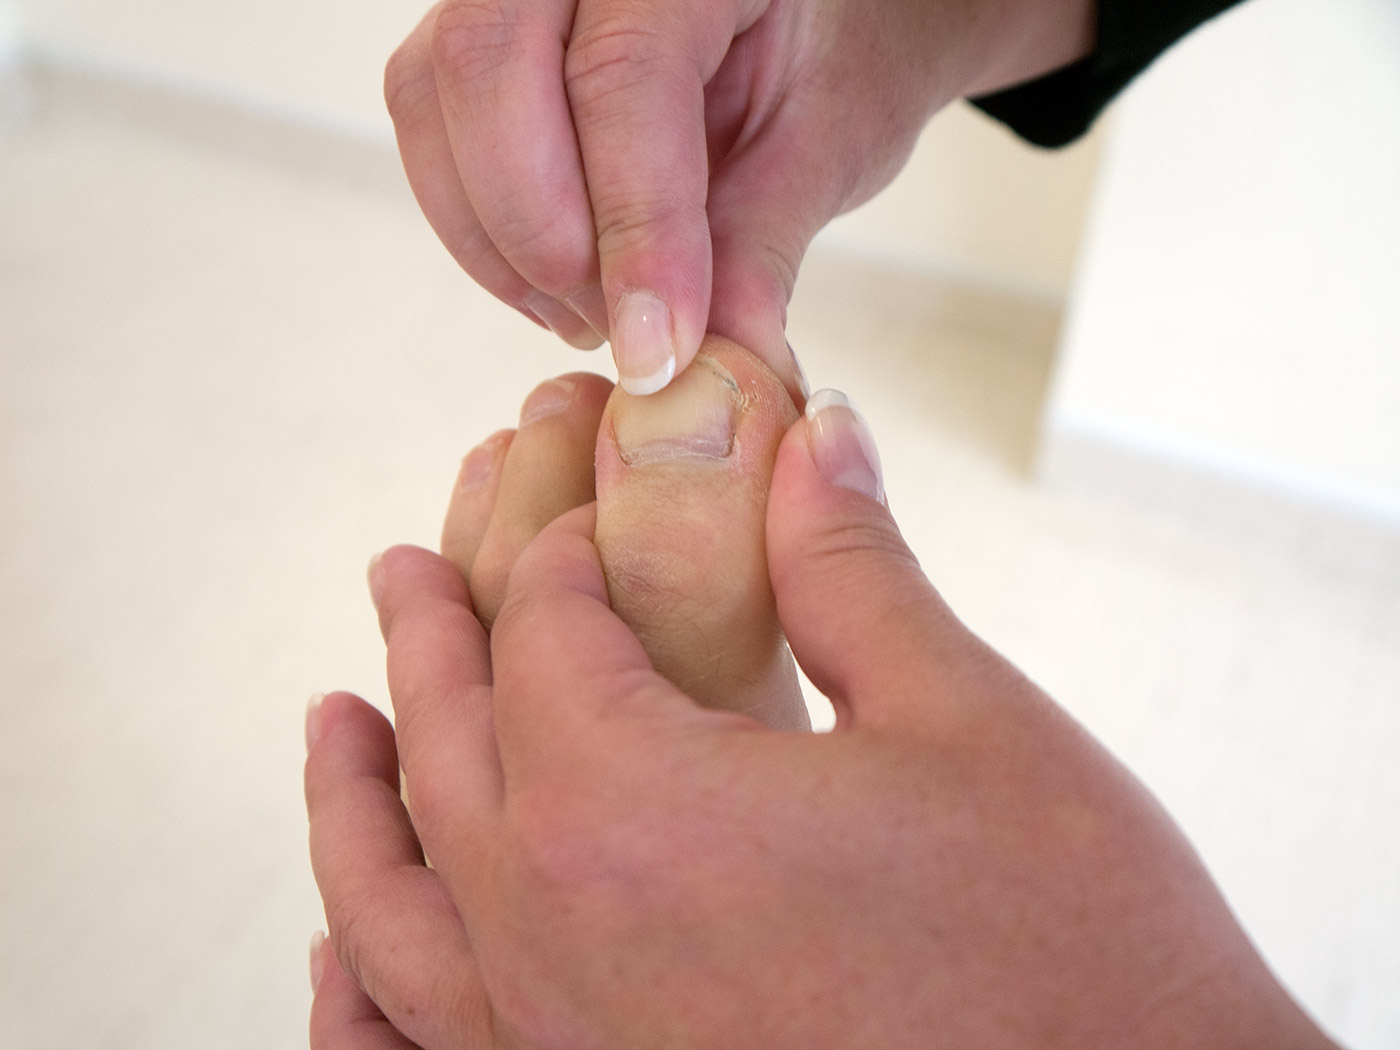 Capillary return - compress the nail bed